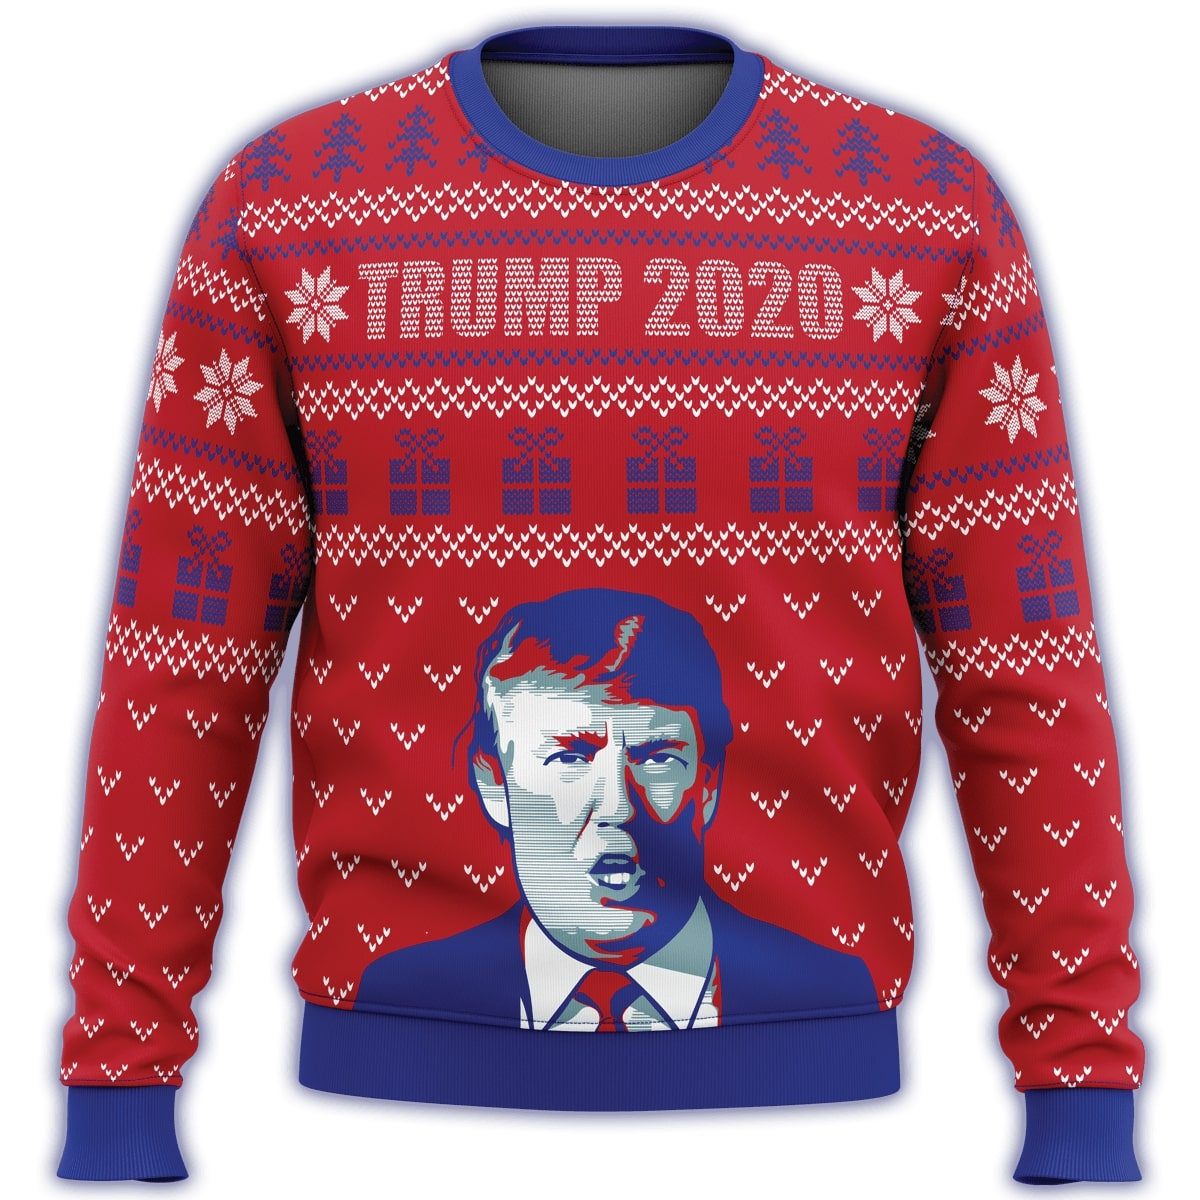 trump 2020 all over printed ugly christmas sweater 3